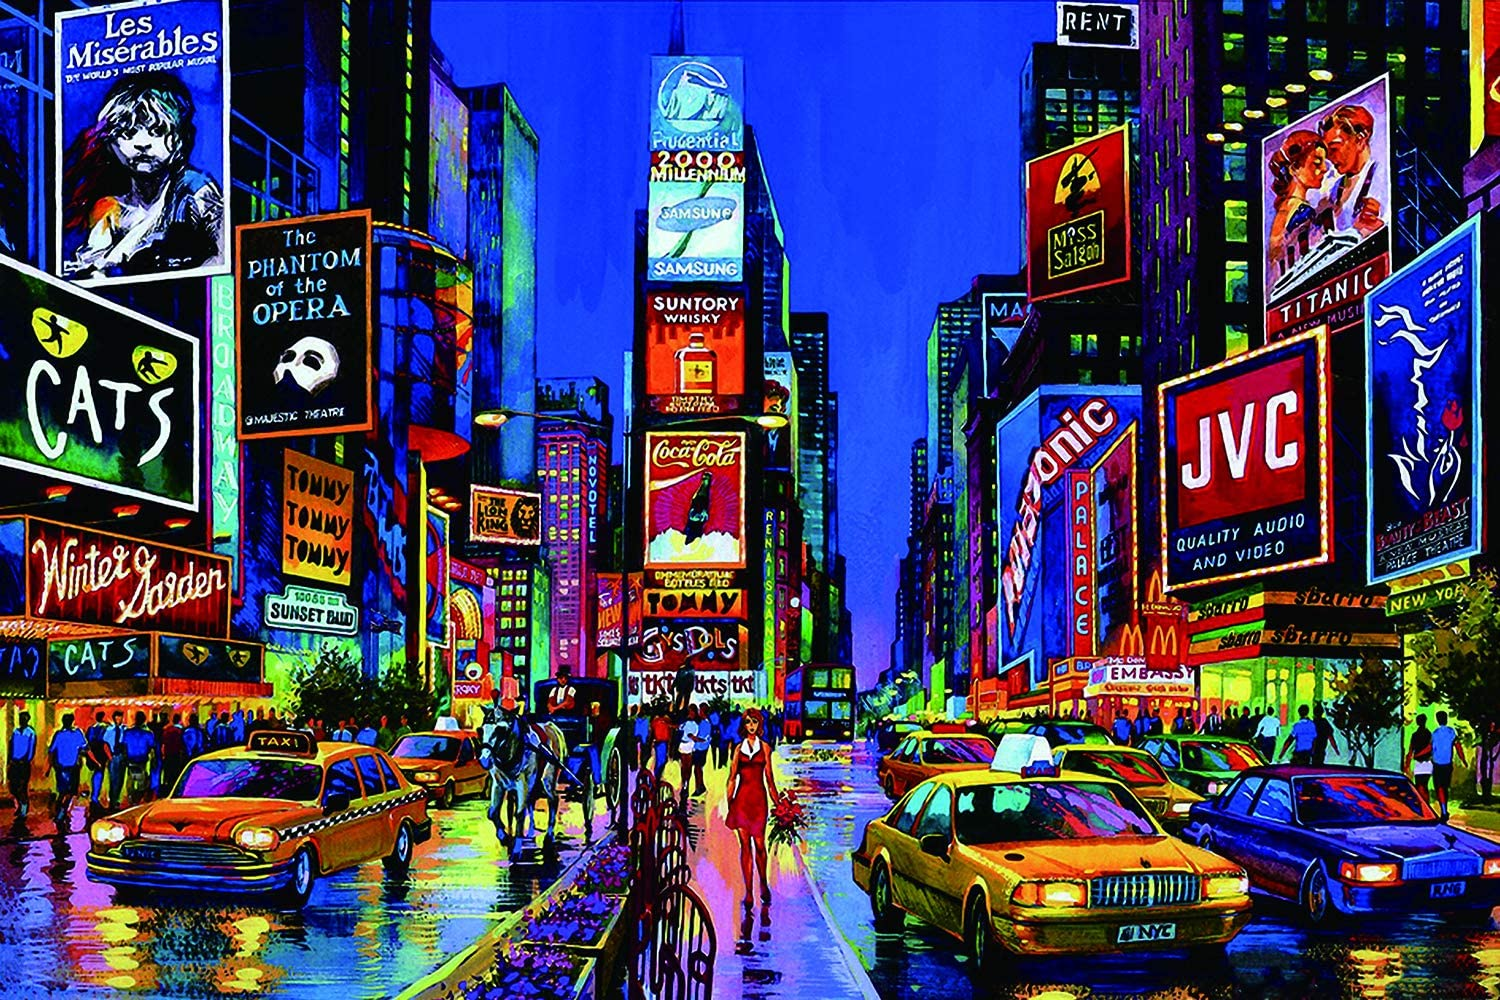 1000 Piece Wooden Jigsaw Puzzle, Newyork Times Square - Educational Intellectual Decompressing Fun Game Puzzle for Adult Teens Kids